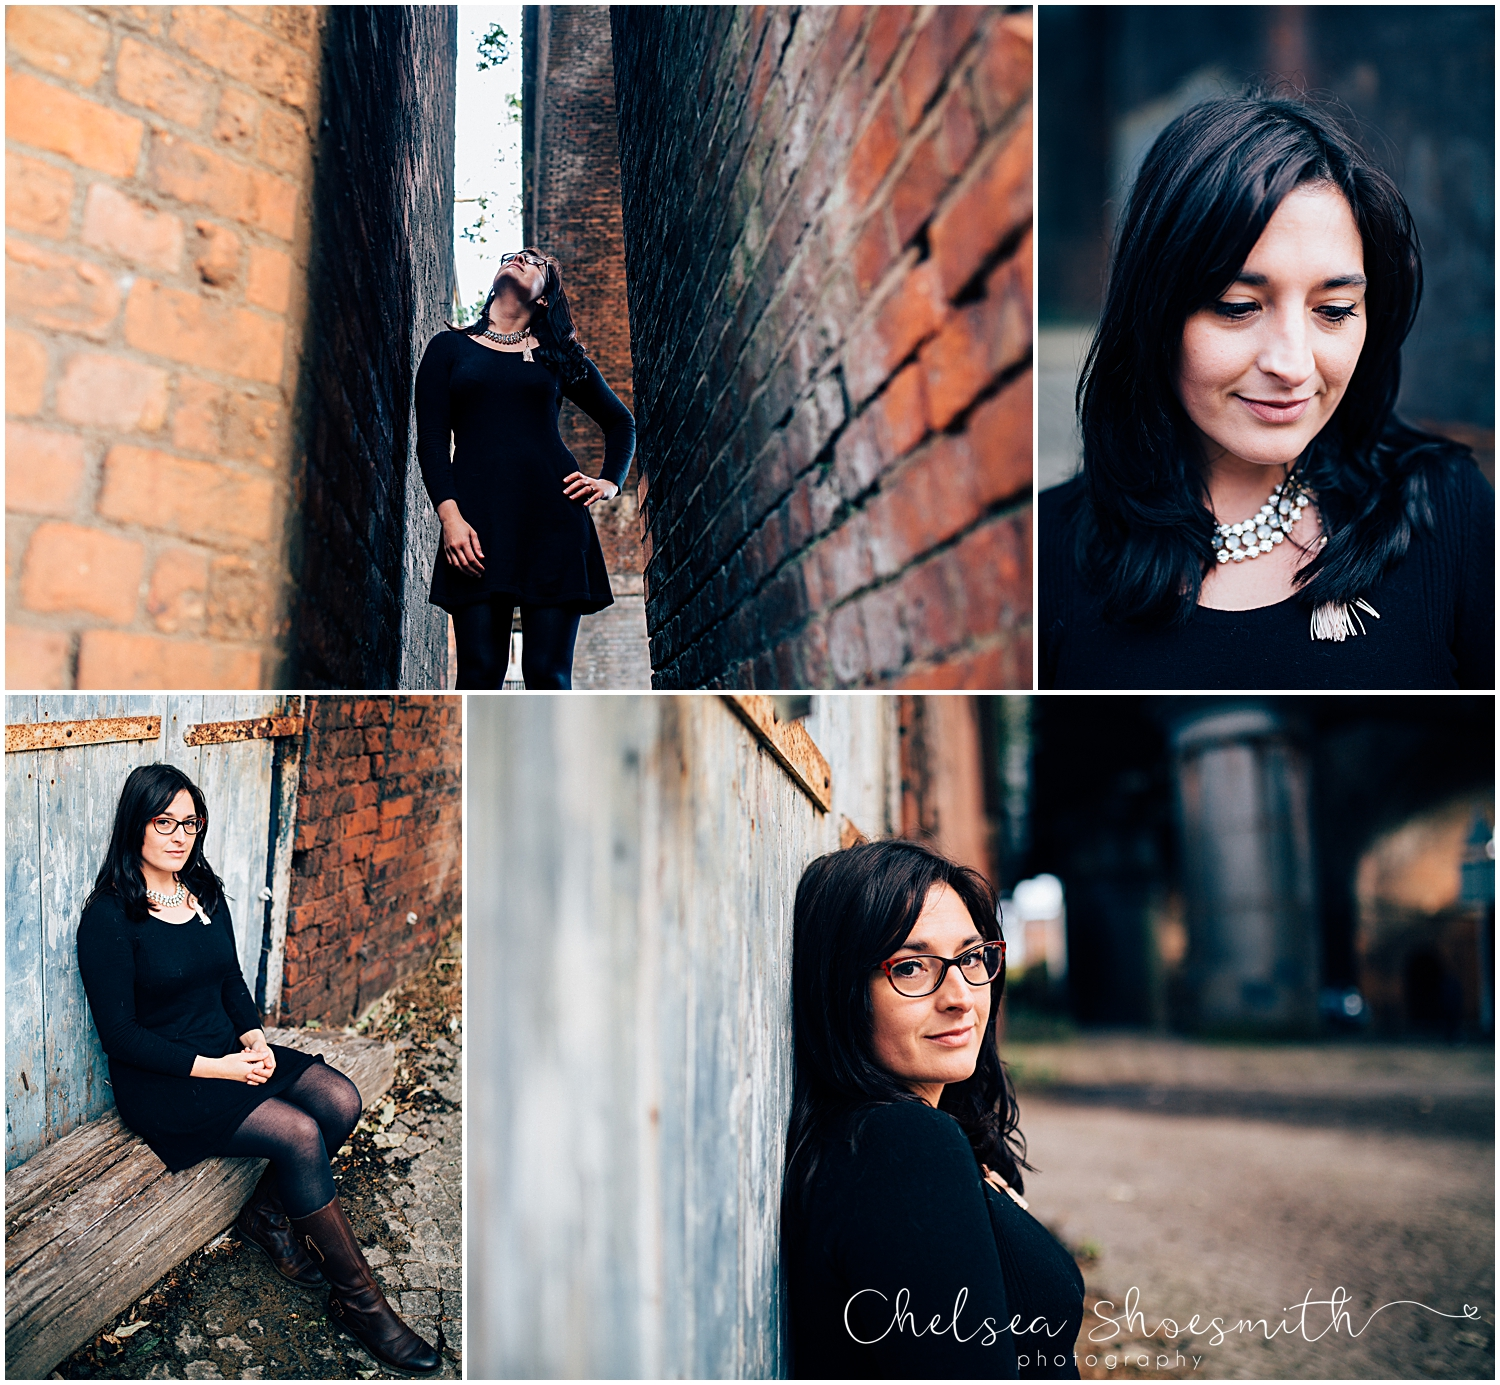 (38 of 88) - Marina Walker Portrait Shoot Castlefield Manchester Chelsea Shoesmith Photography